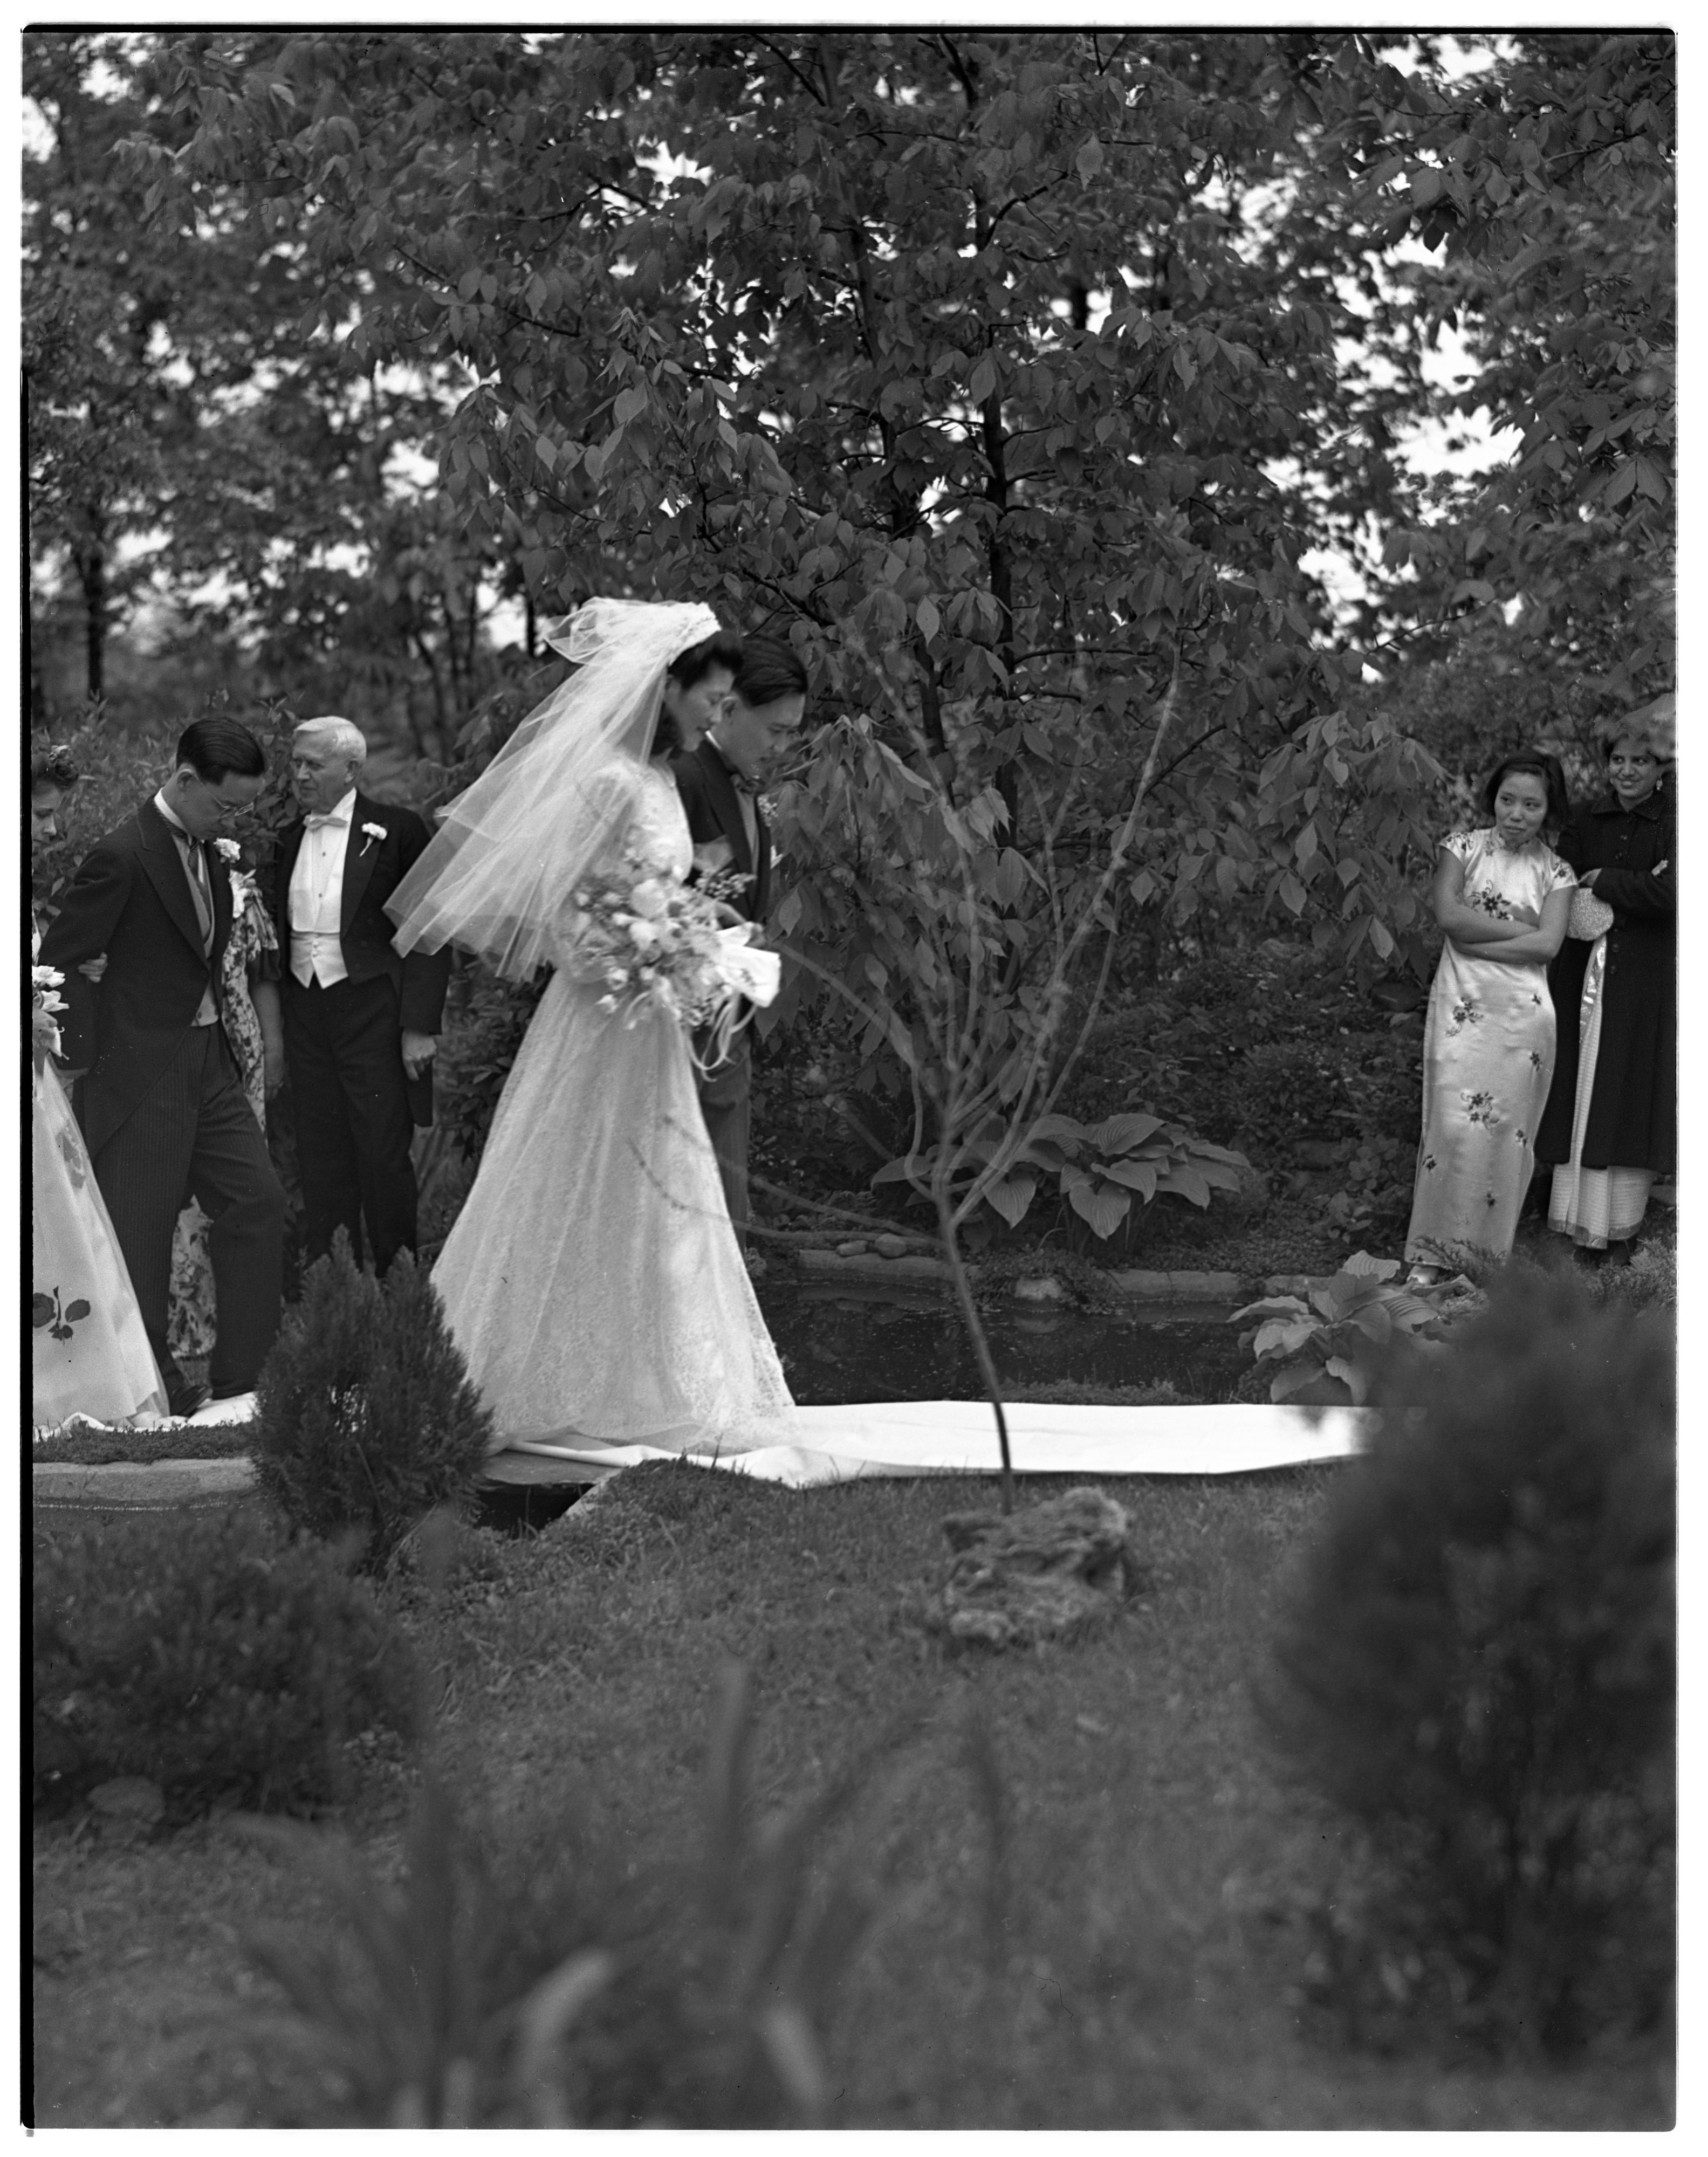 Newlyweds Choon Cha Lee and Carl Kwak Walk on Garden Path, May 1942 image